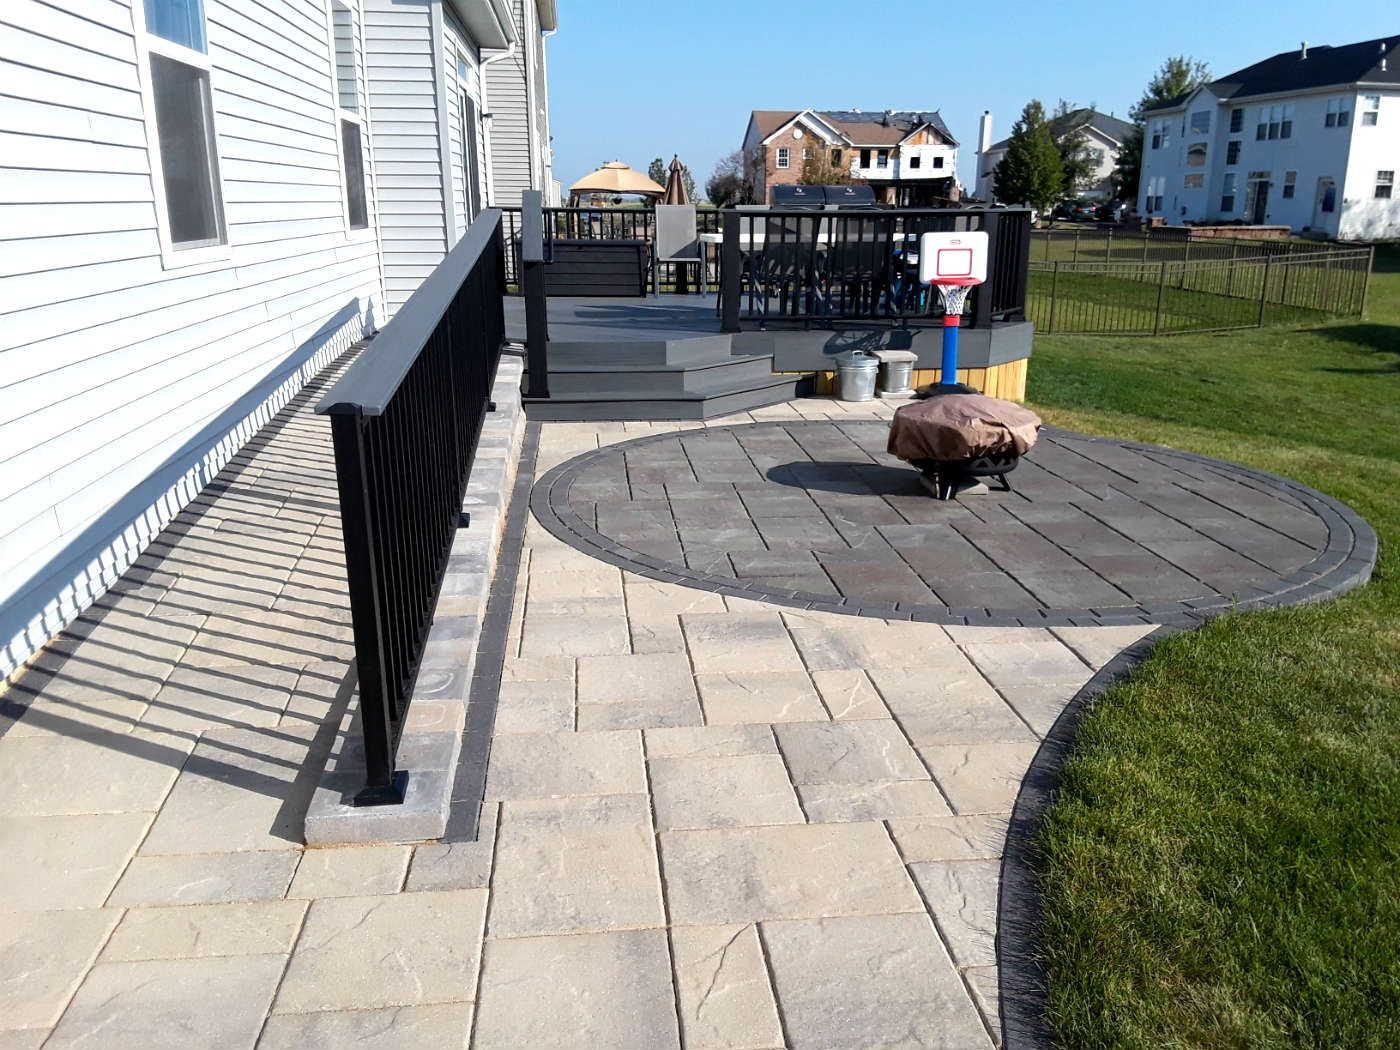 Timber Tech Deck With Belgard Paver Patio By Bolingbrook, IL Deck Designer